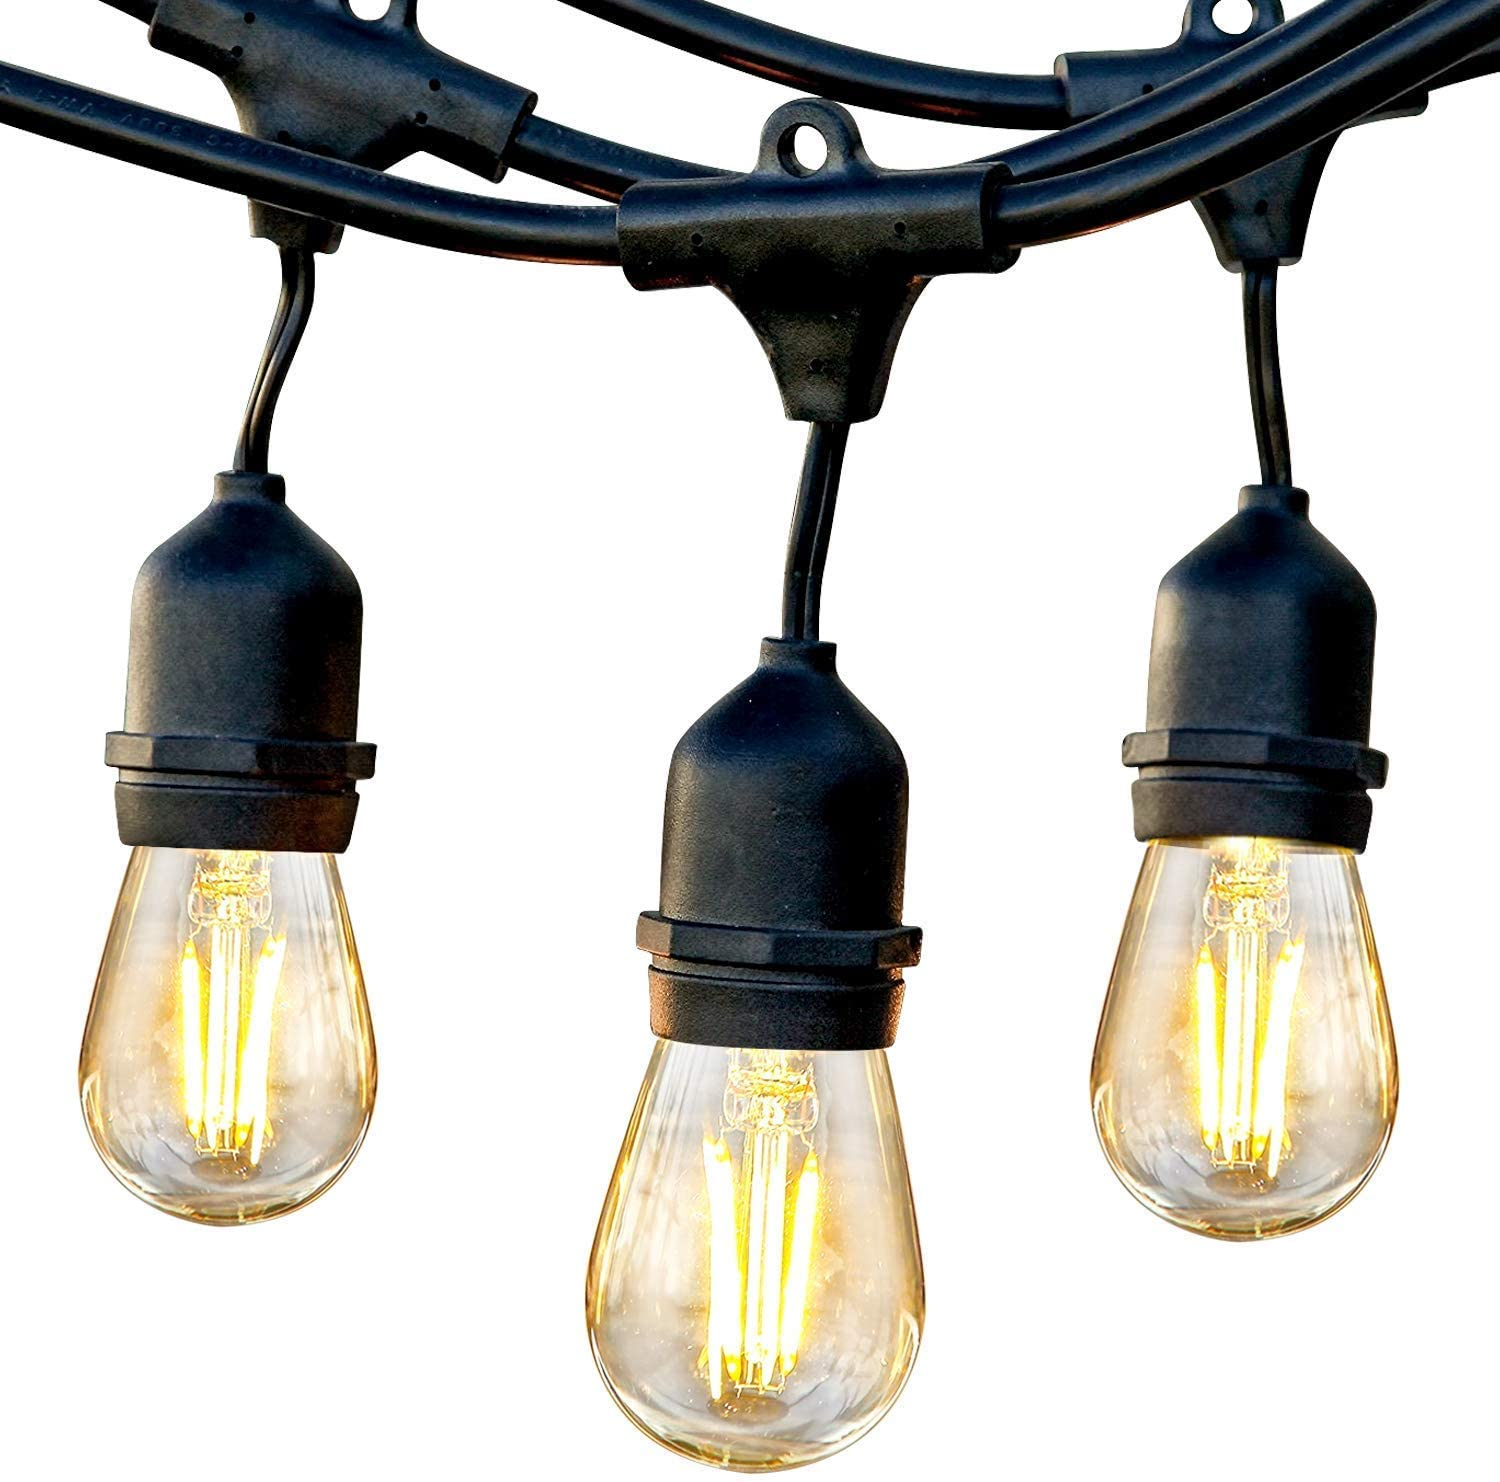 Brightech Ambience Pro Max 47% OFF - Waterproof New products, world's highest quality popular! LED Lights Outdoor String